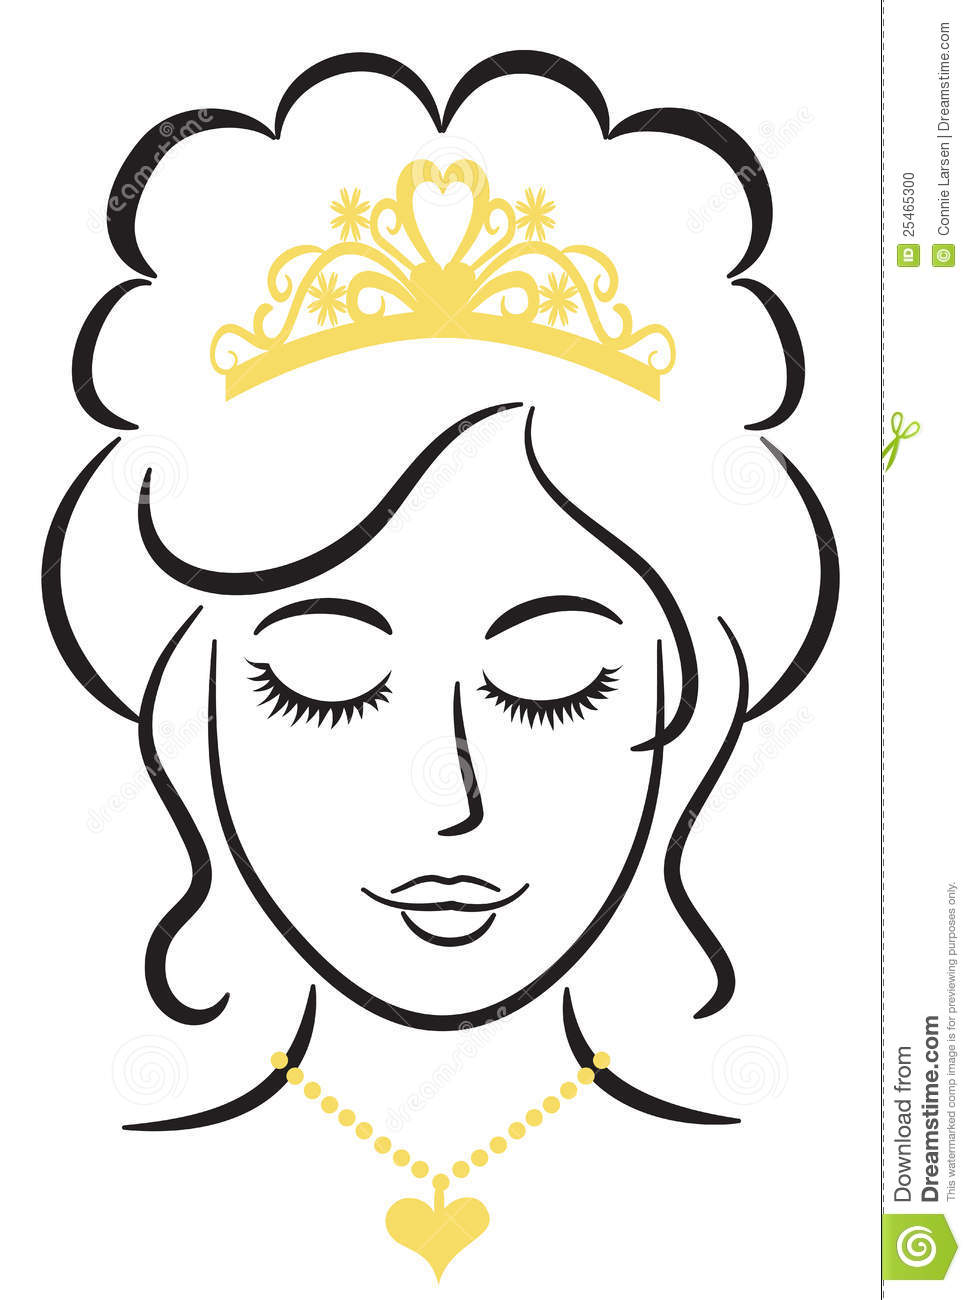 Elegant Swash Line Drawing Of A Princess Or Queen With Crown